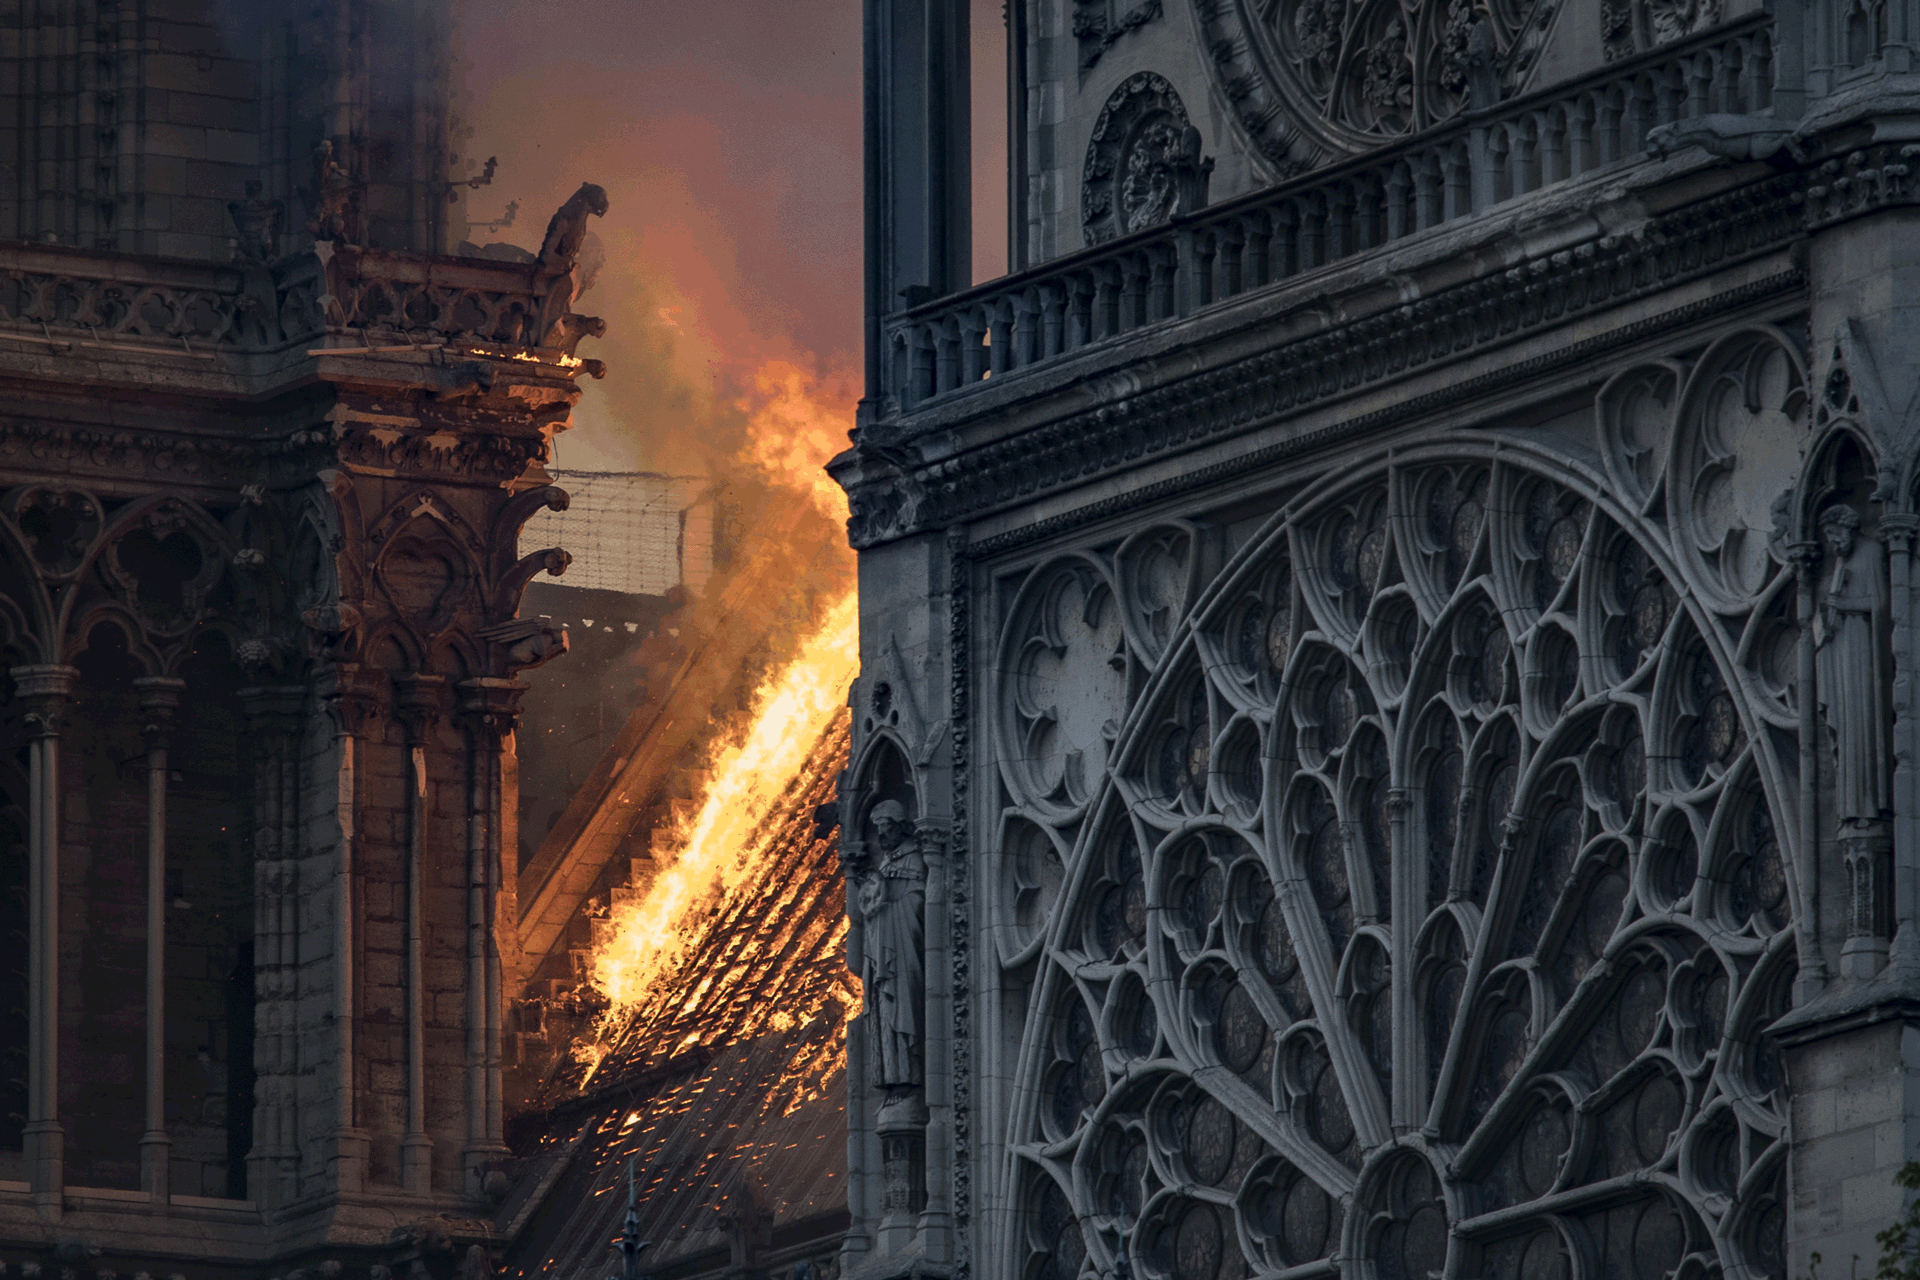 Firefighters Race to Salvage Artwork in Notre Dame Fire